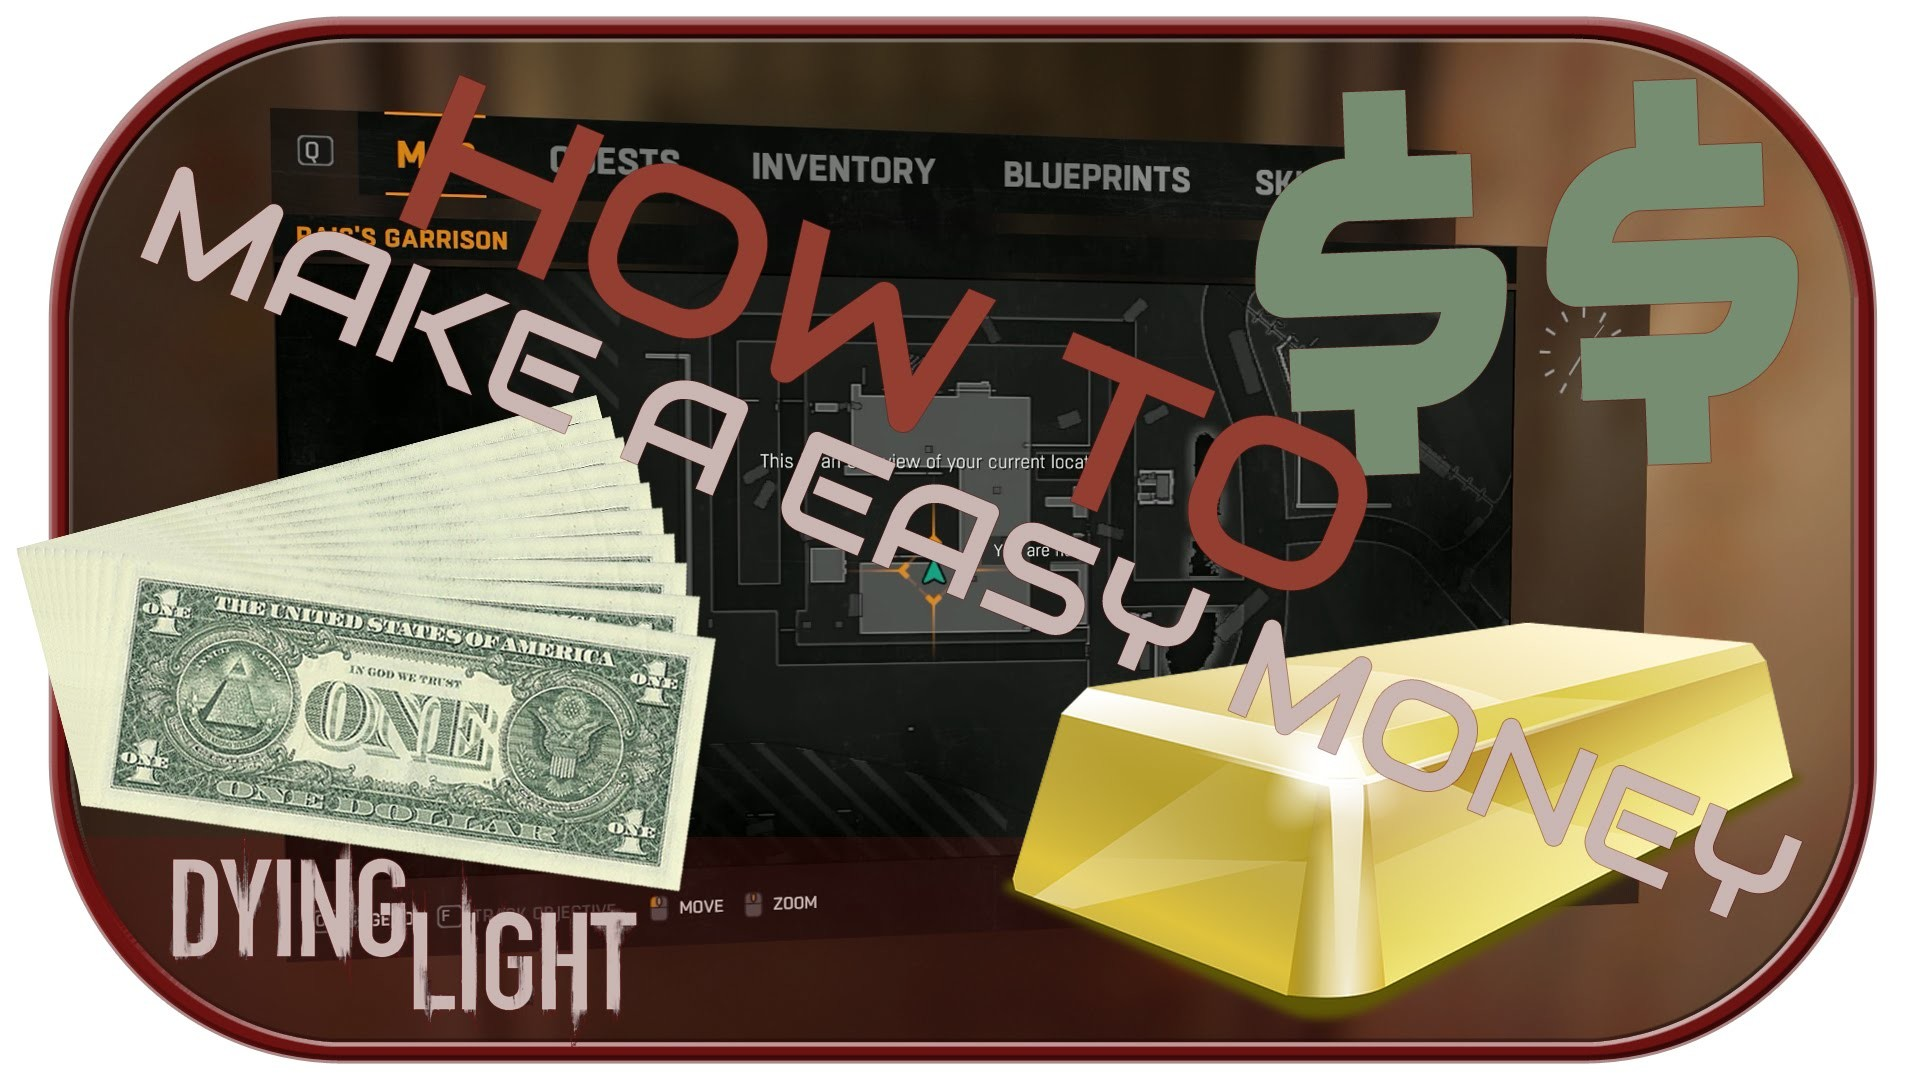 HOW TO MAKE AN EASY MONEY [EVEN MILLIONS] - Dying Light [PC.1080p]